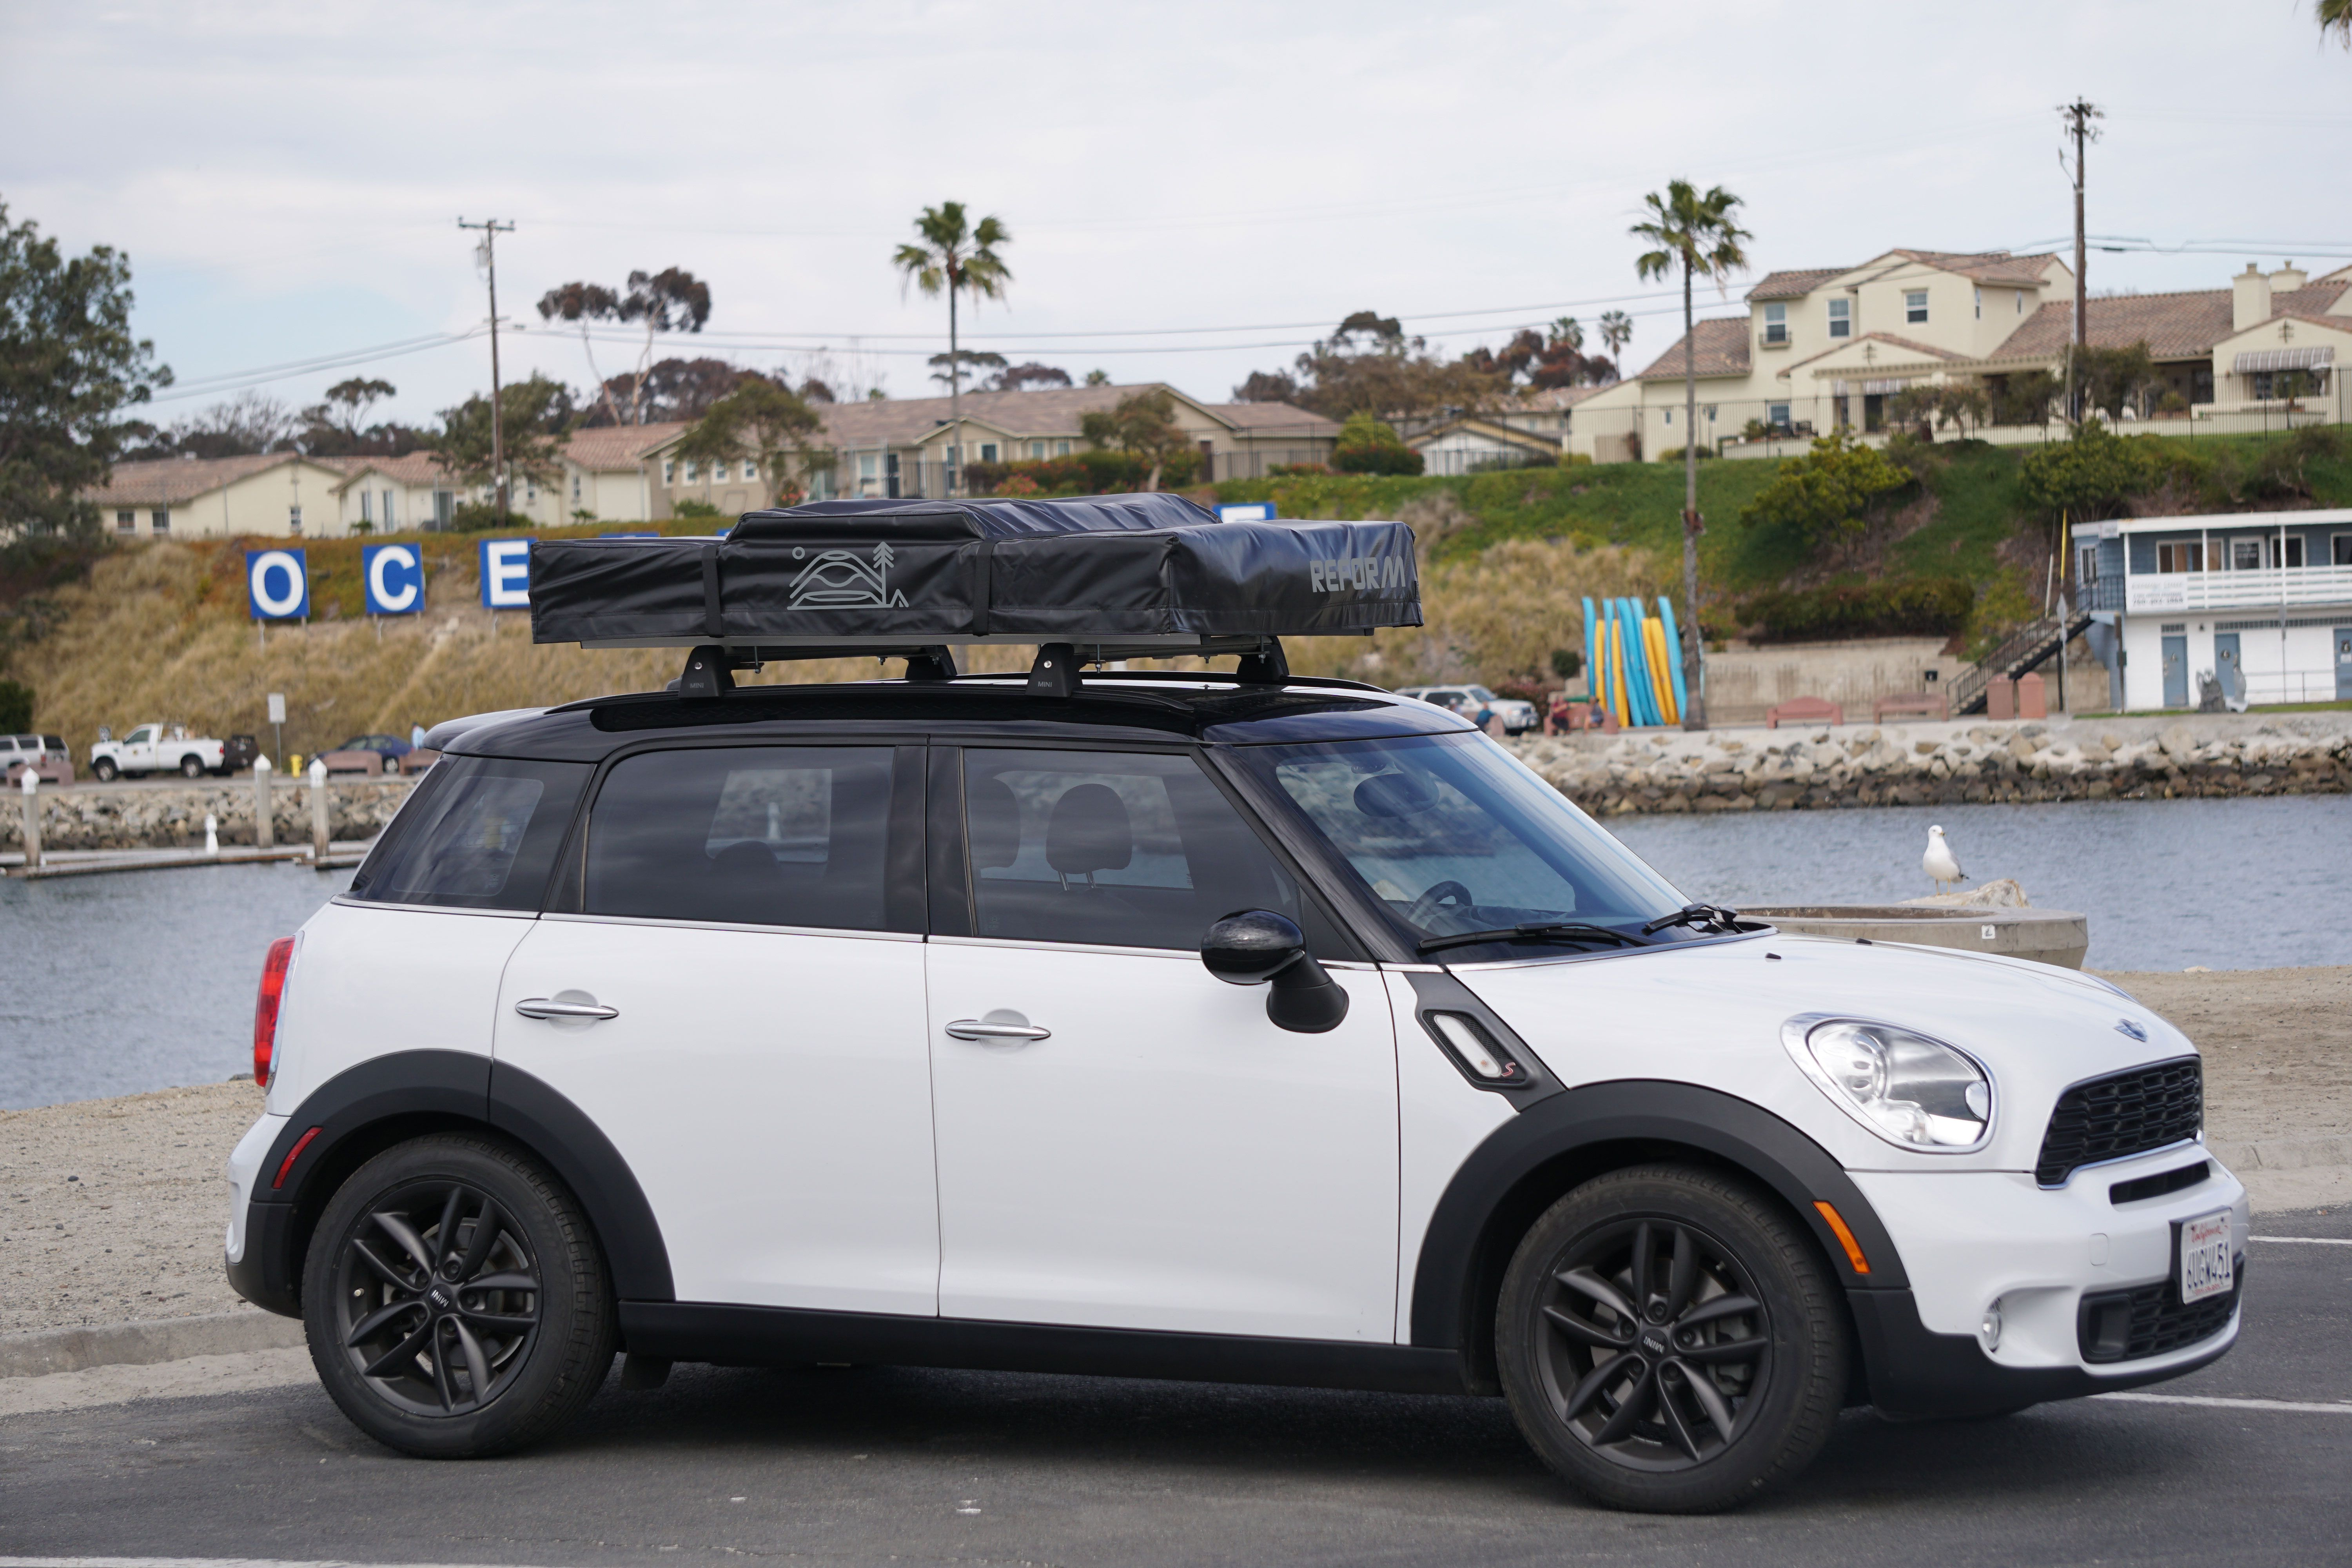 Nesty Roof Top Tent On Mini Cooper Countryman Roof Tent For Smaller Vehicles Oceanside Ca Roof Top Tent Fibreglass Roof Top Tents